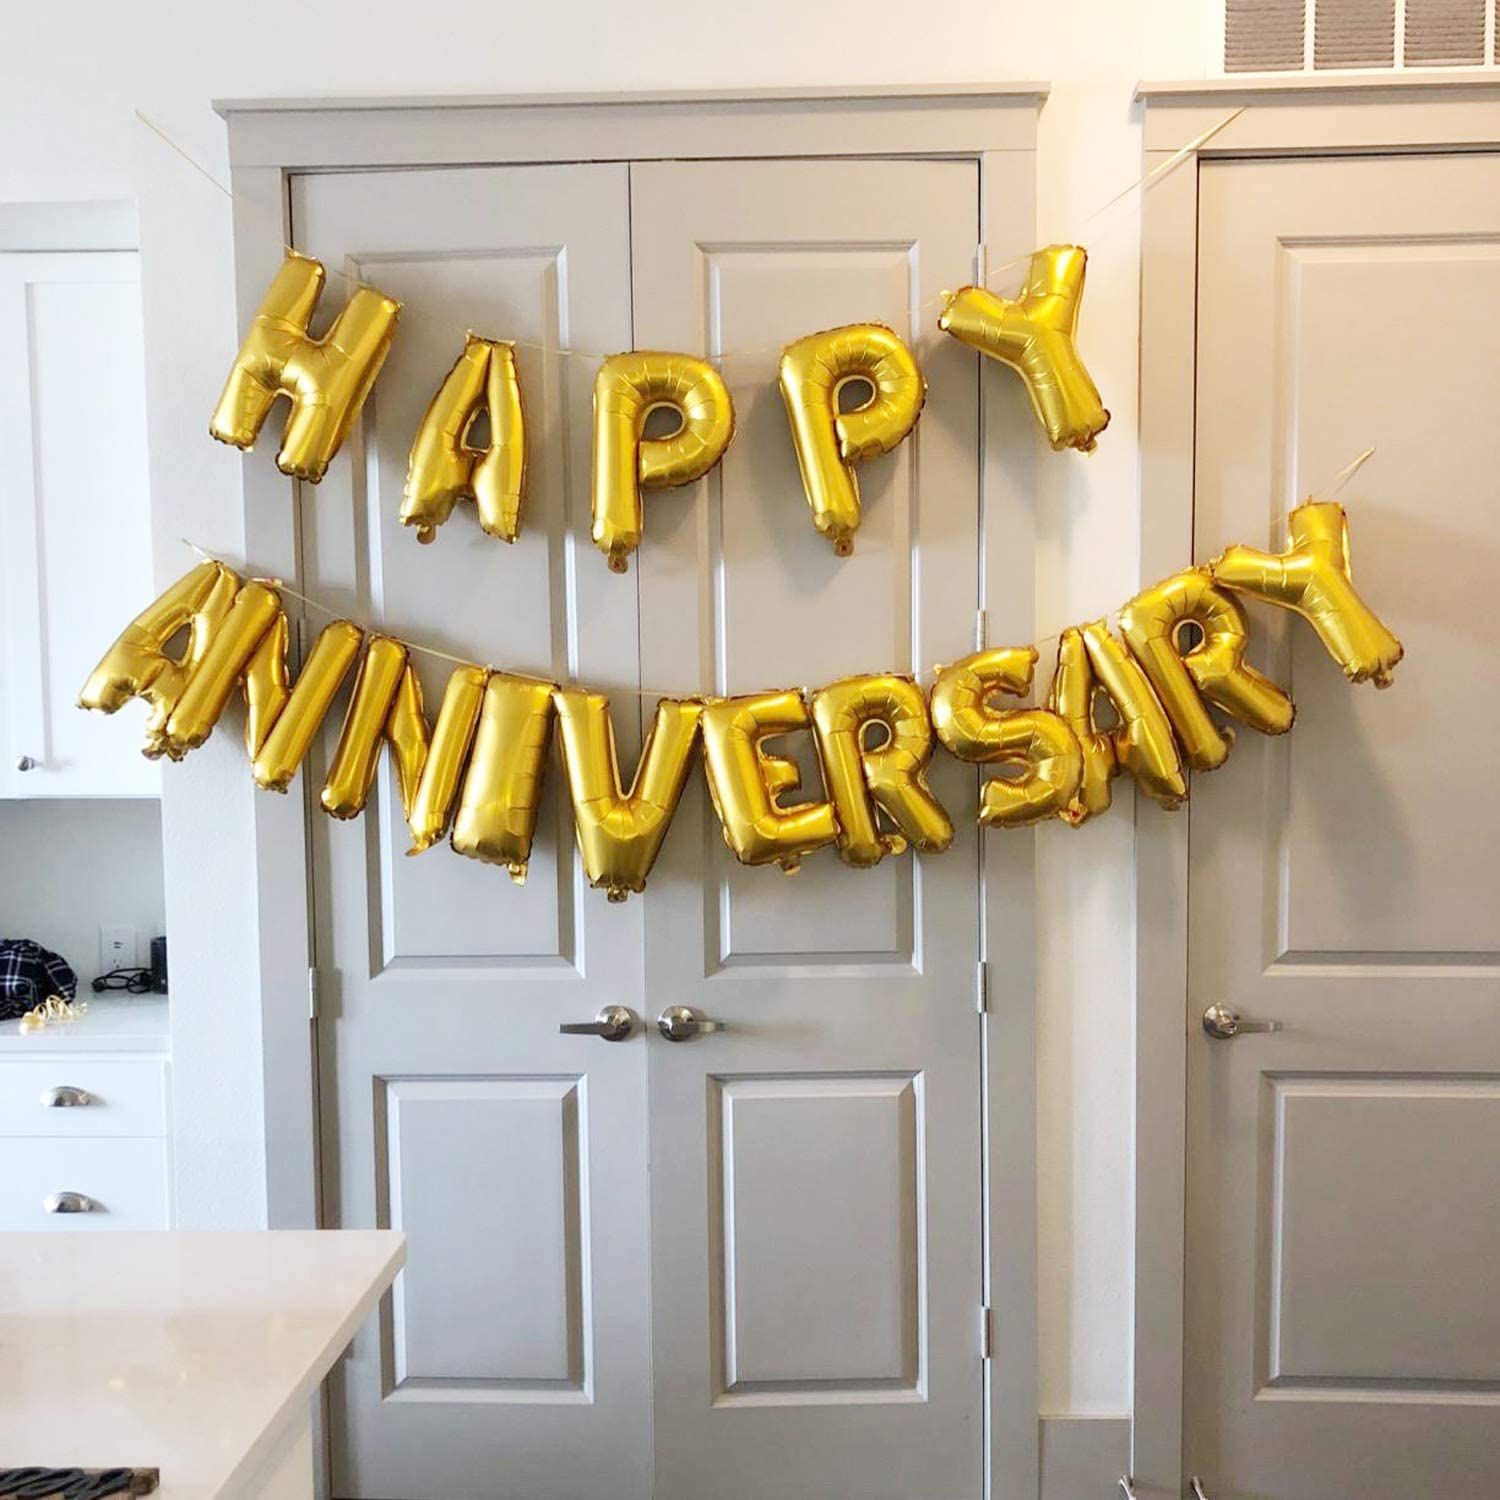 Perfect Party Decoration Supplies for Family Milestone Celebrations and Events TRIXES Happy Anniversary Balloons Gold Foil Letters 16 Inch Large Size